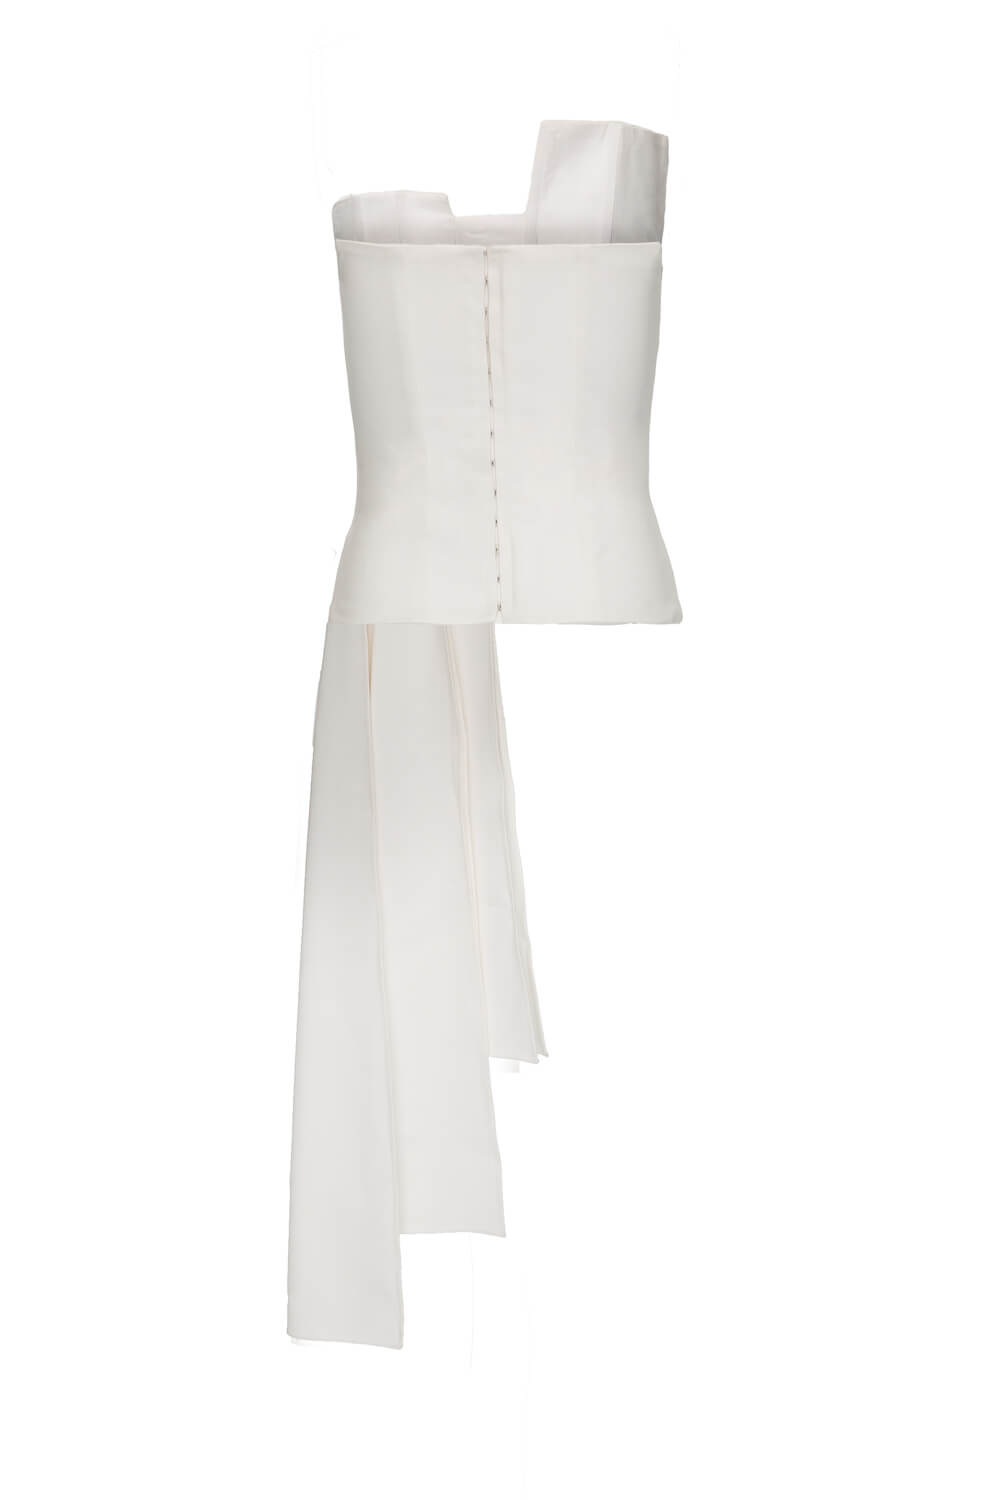 WHITE BUSTIER WITH LONG PLEATED DETAIL